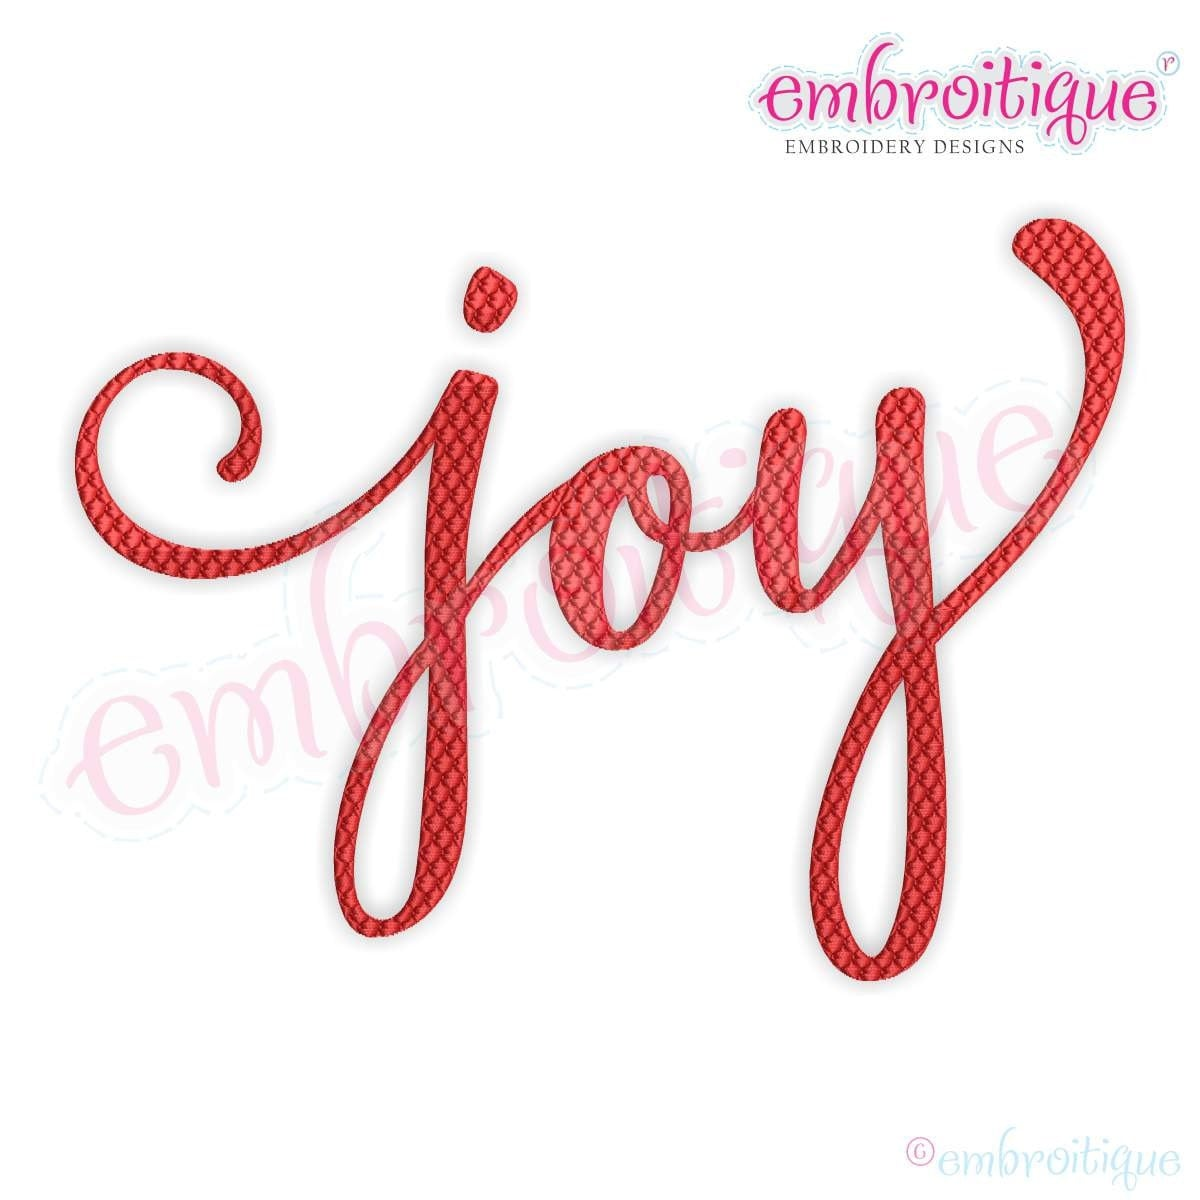 Joy calligraphy patterned fill stitch machine embroidery